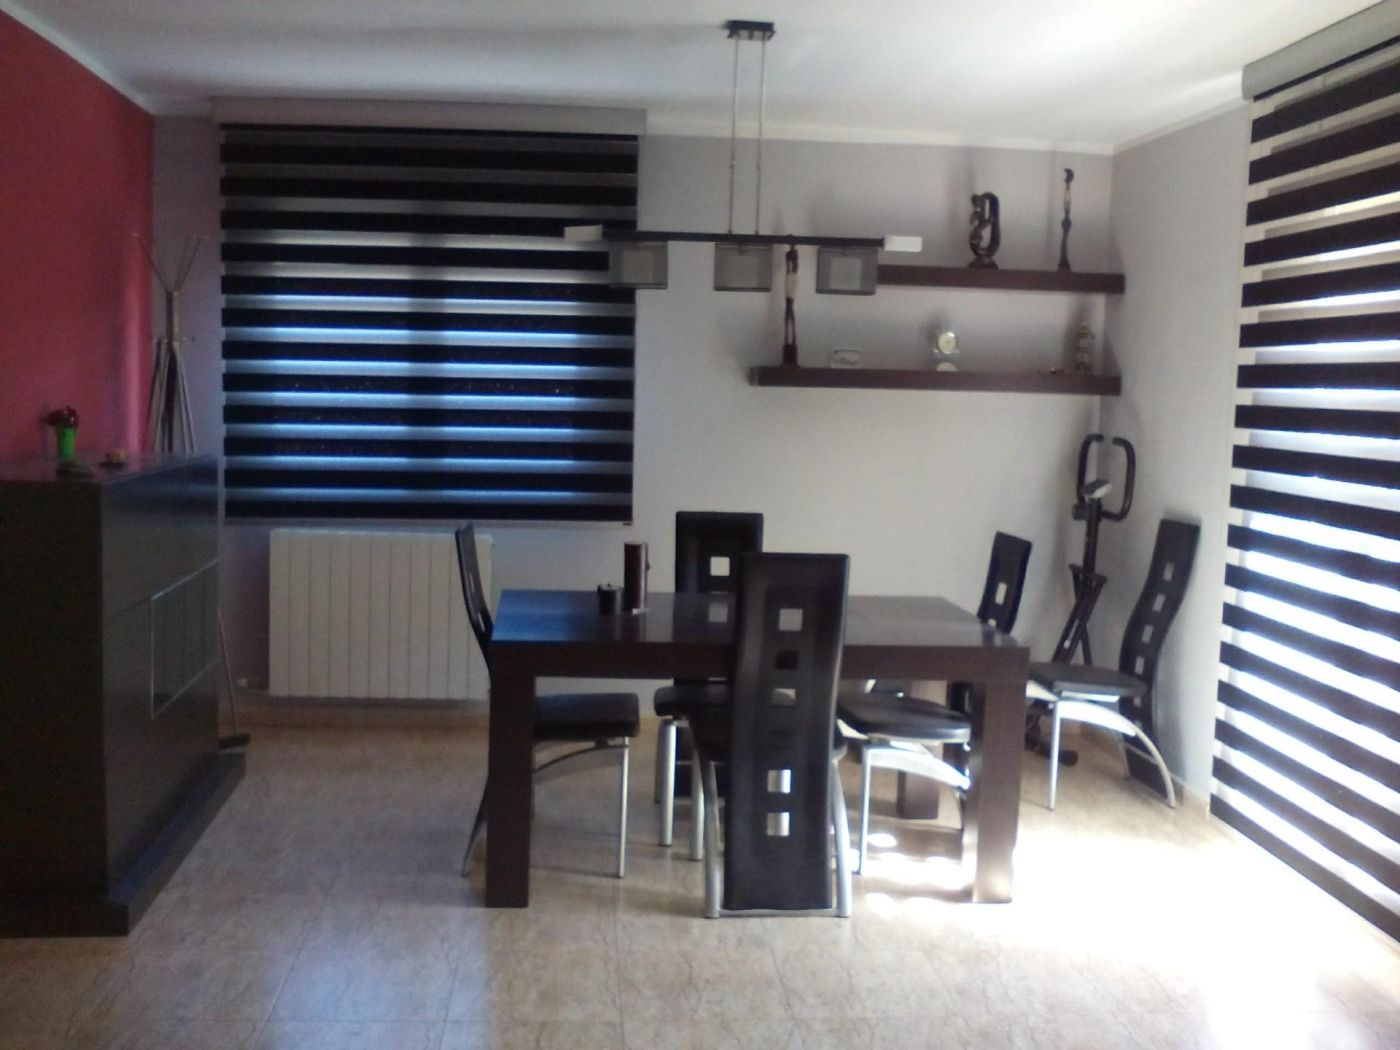 Semi detached house in Travessia vilalta, 19. Puigverd de lleida / travessia vilalta